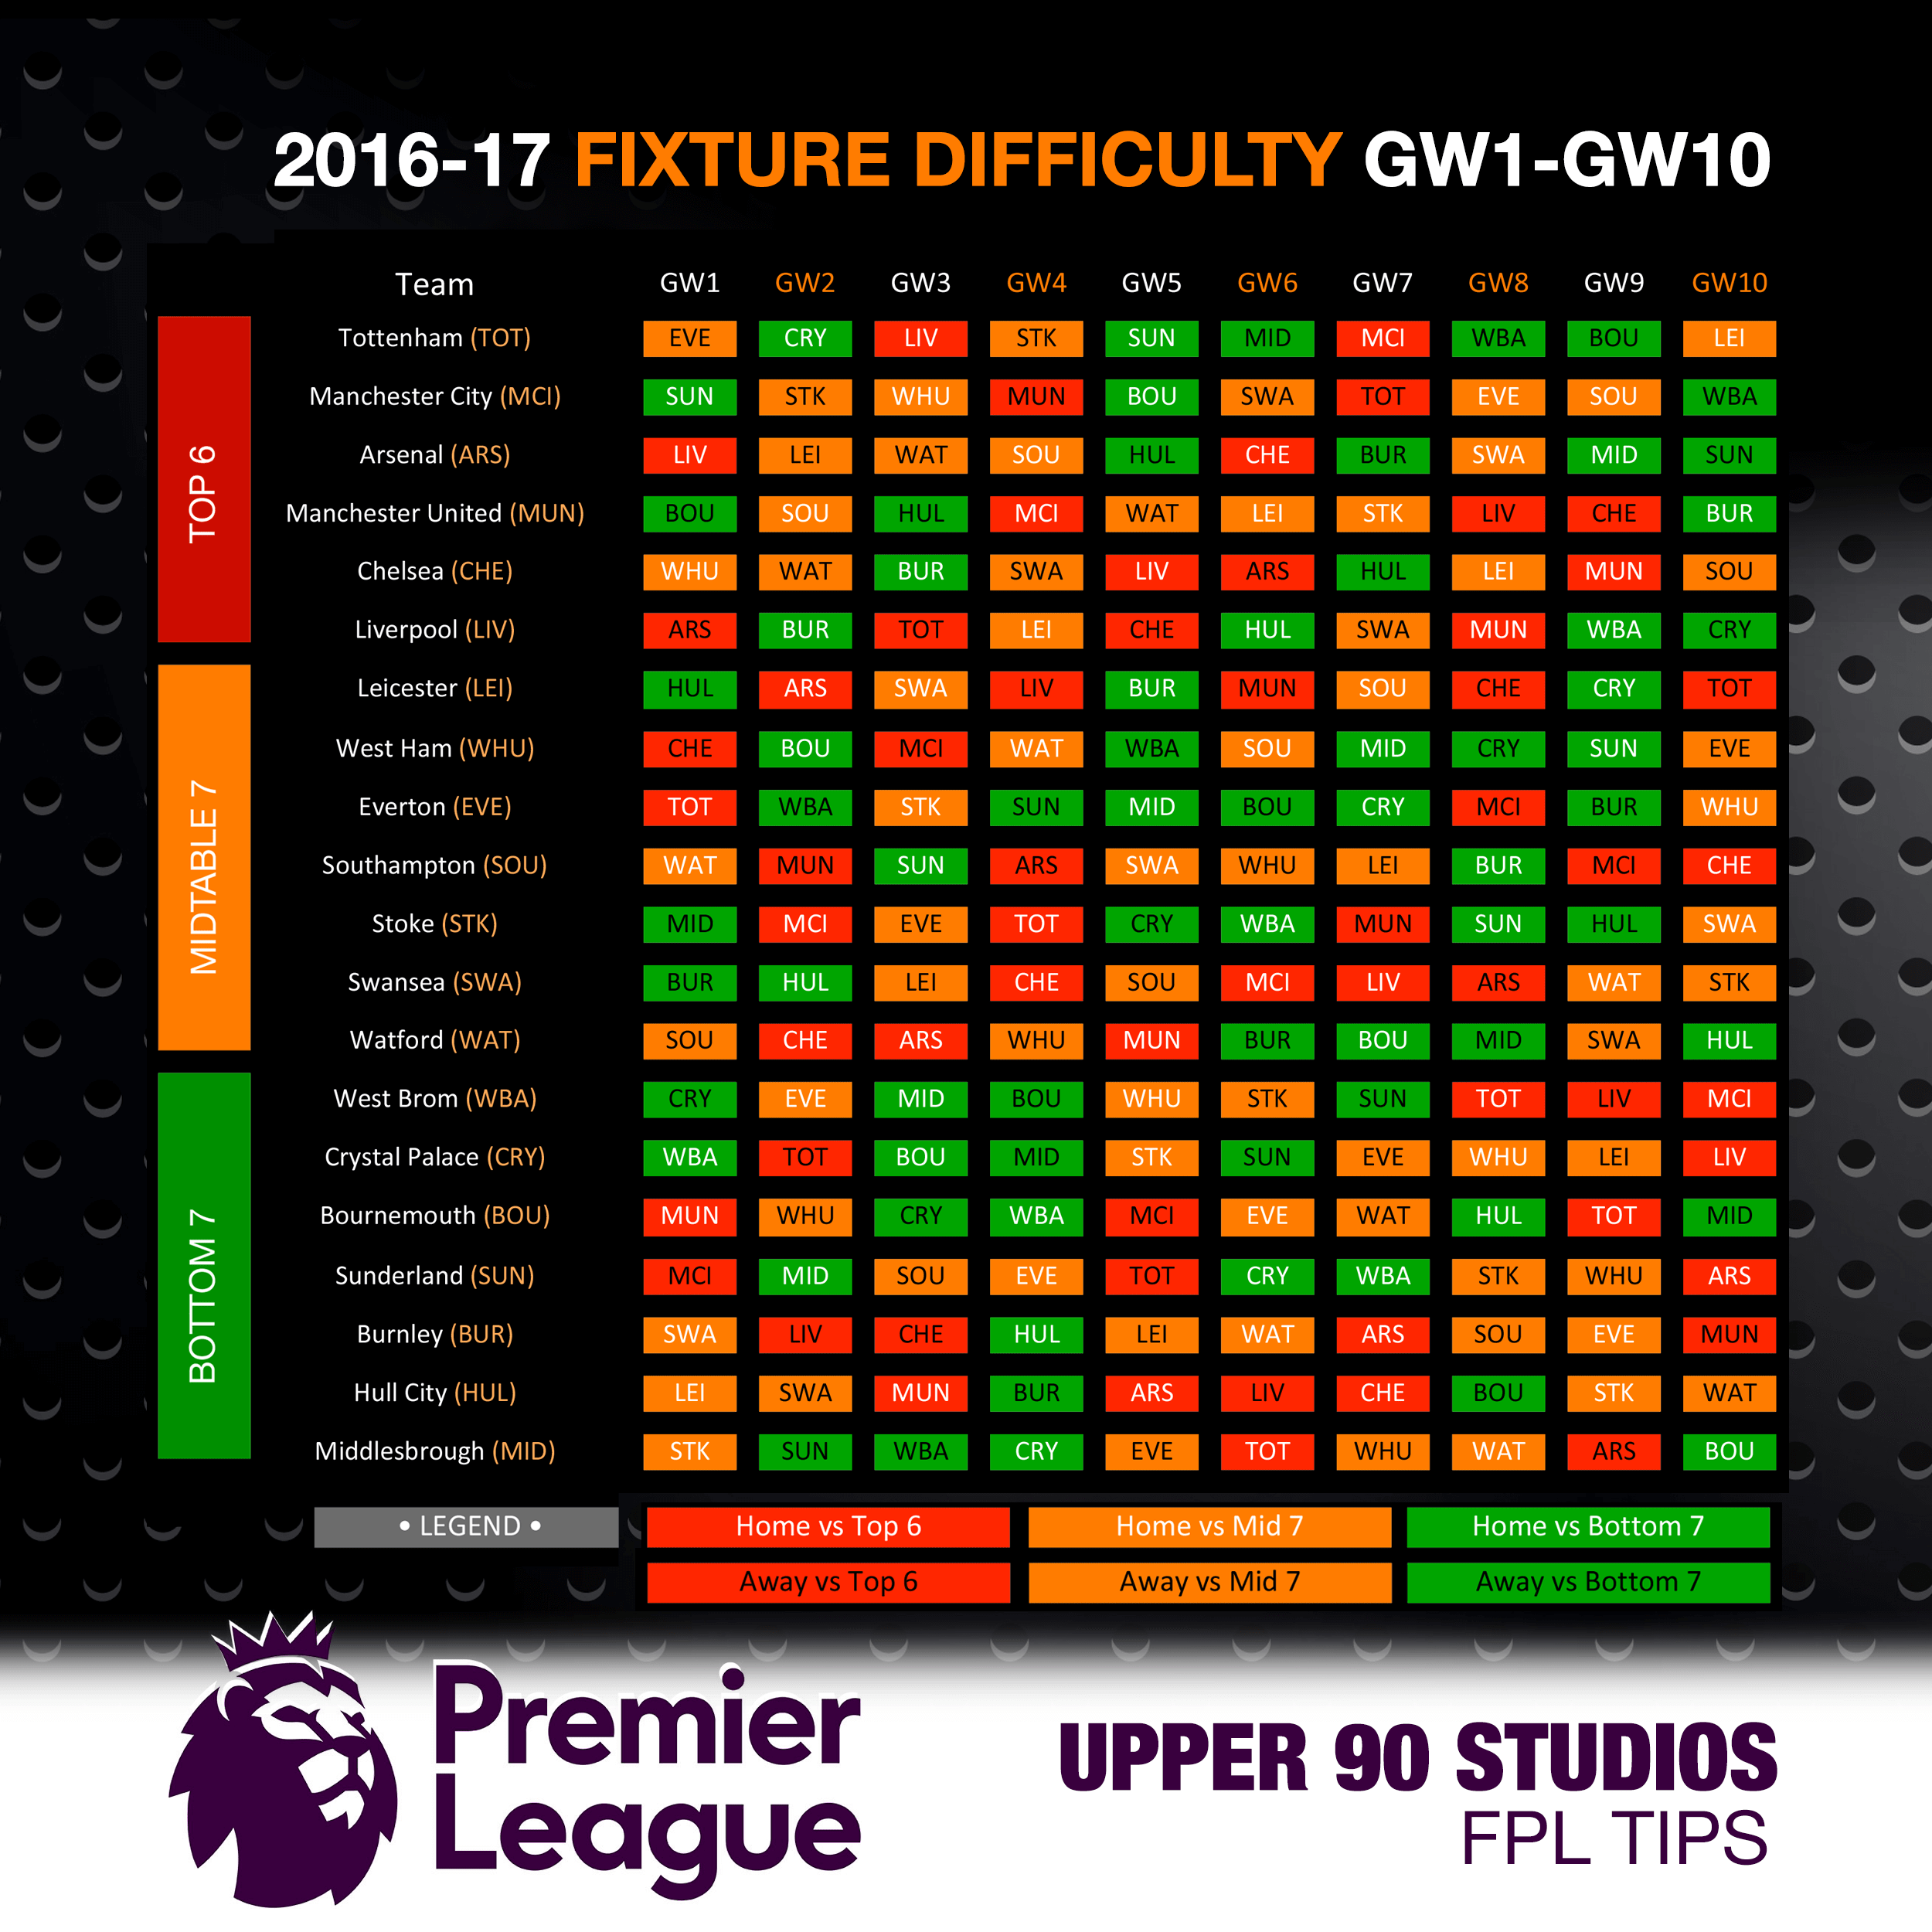 Download Liverpool Vs Middlesbrough 3 0 Epl Video: 2016-17 Fantasy Premier League Fixture Difficulty Cheat